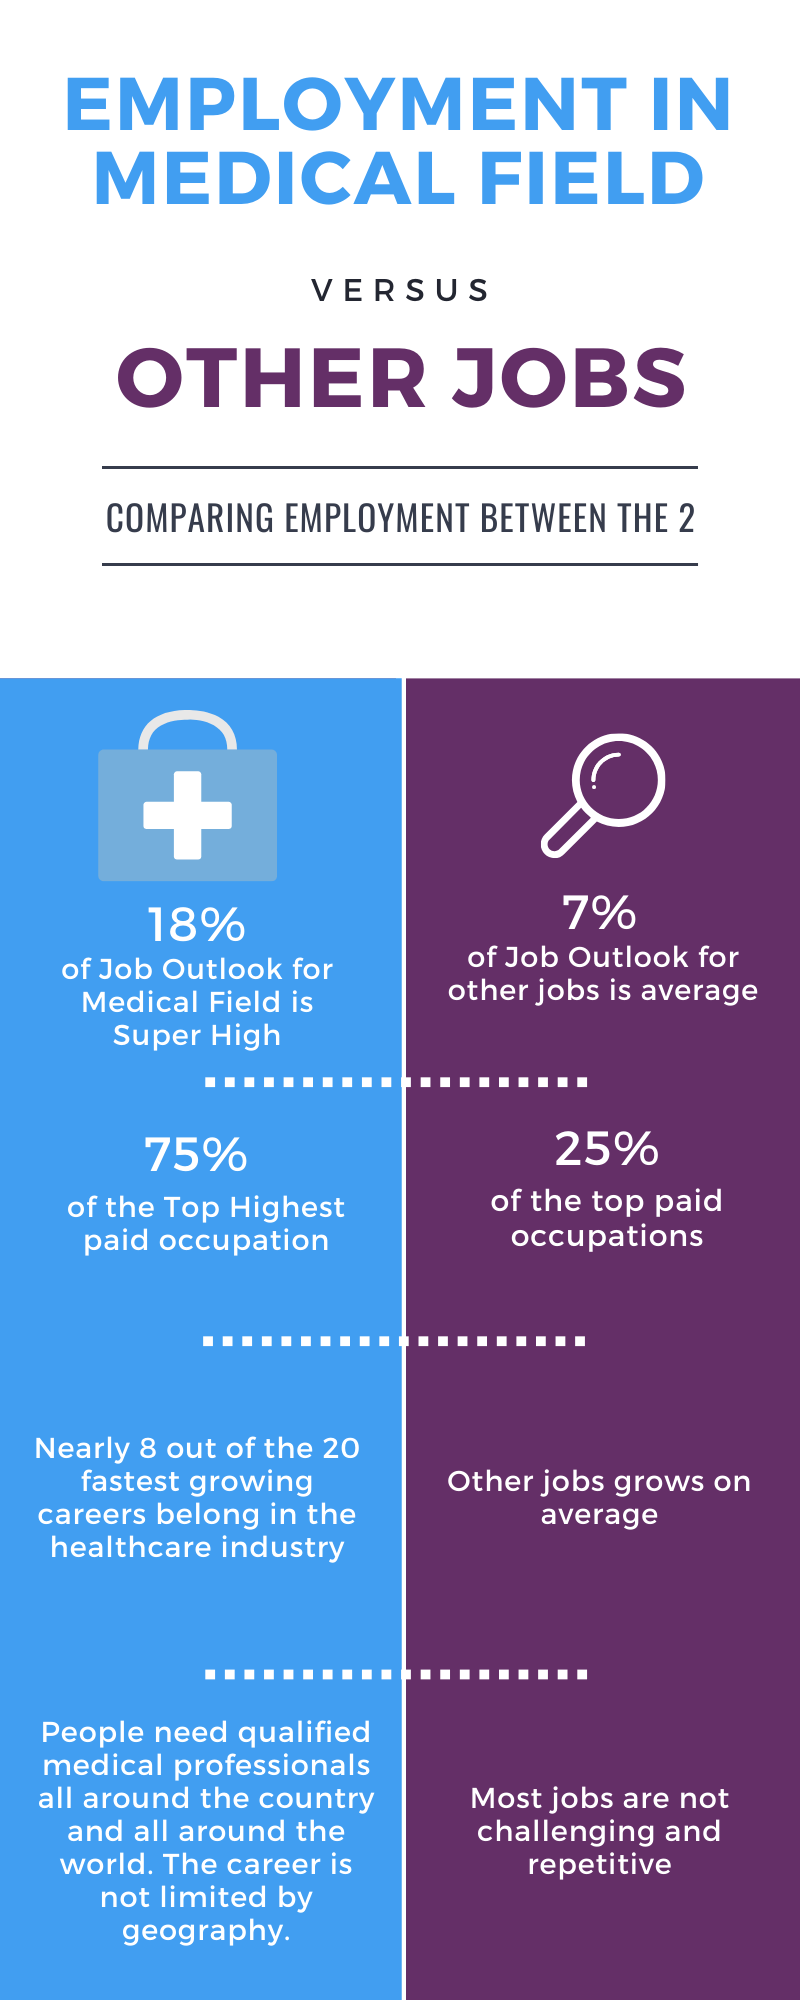 Look at this infographic between employment in medical